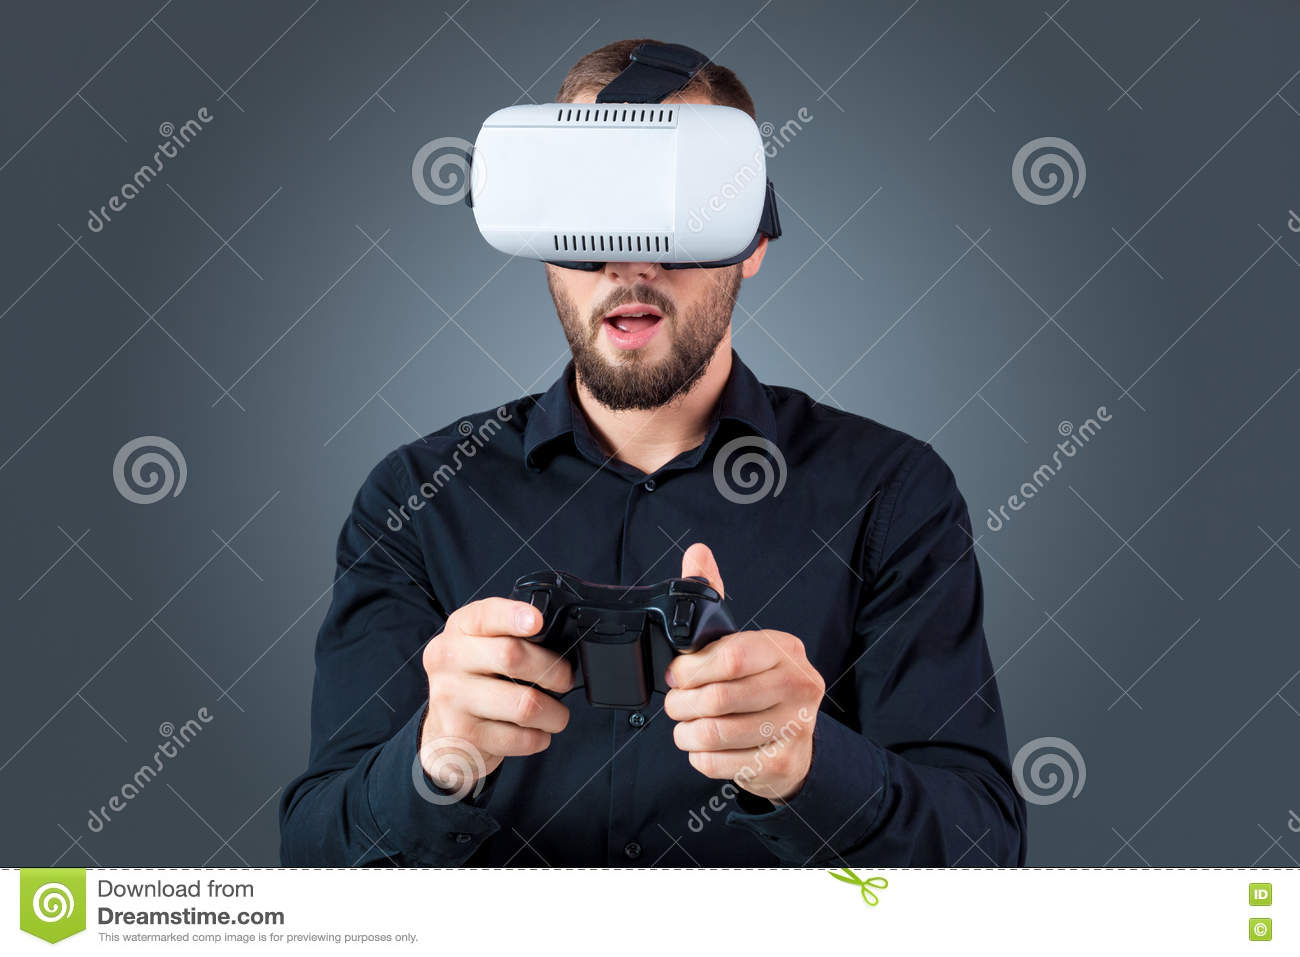 443839950d5c Excited young man using a VR headset glasses and experiencing virtual  reality on grey blue background. with a joystick in their hands